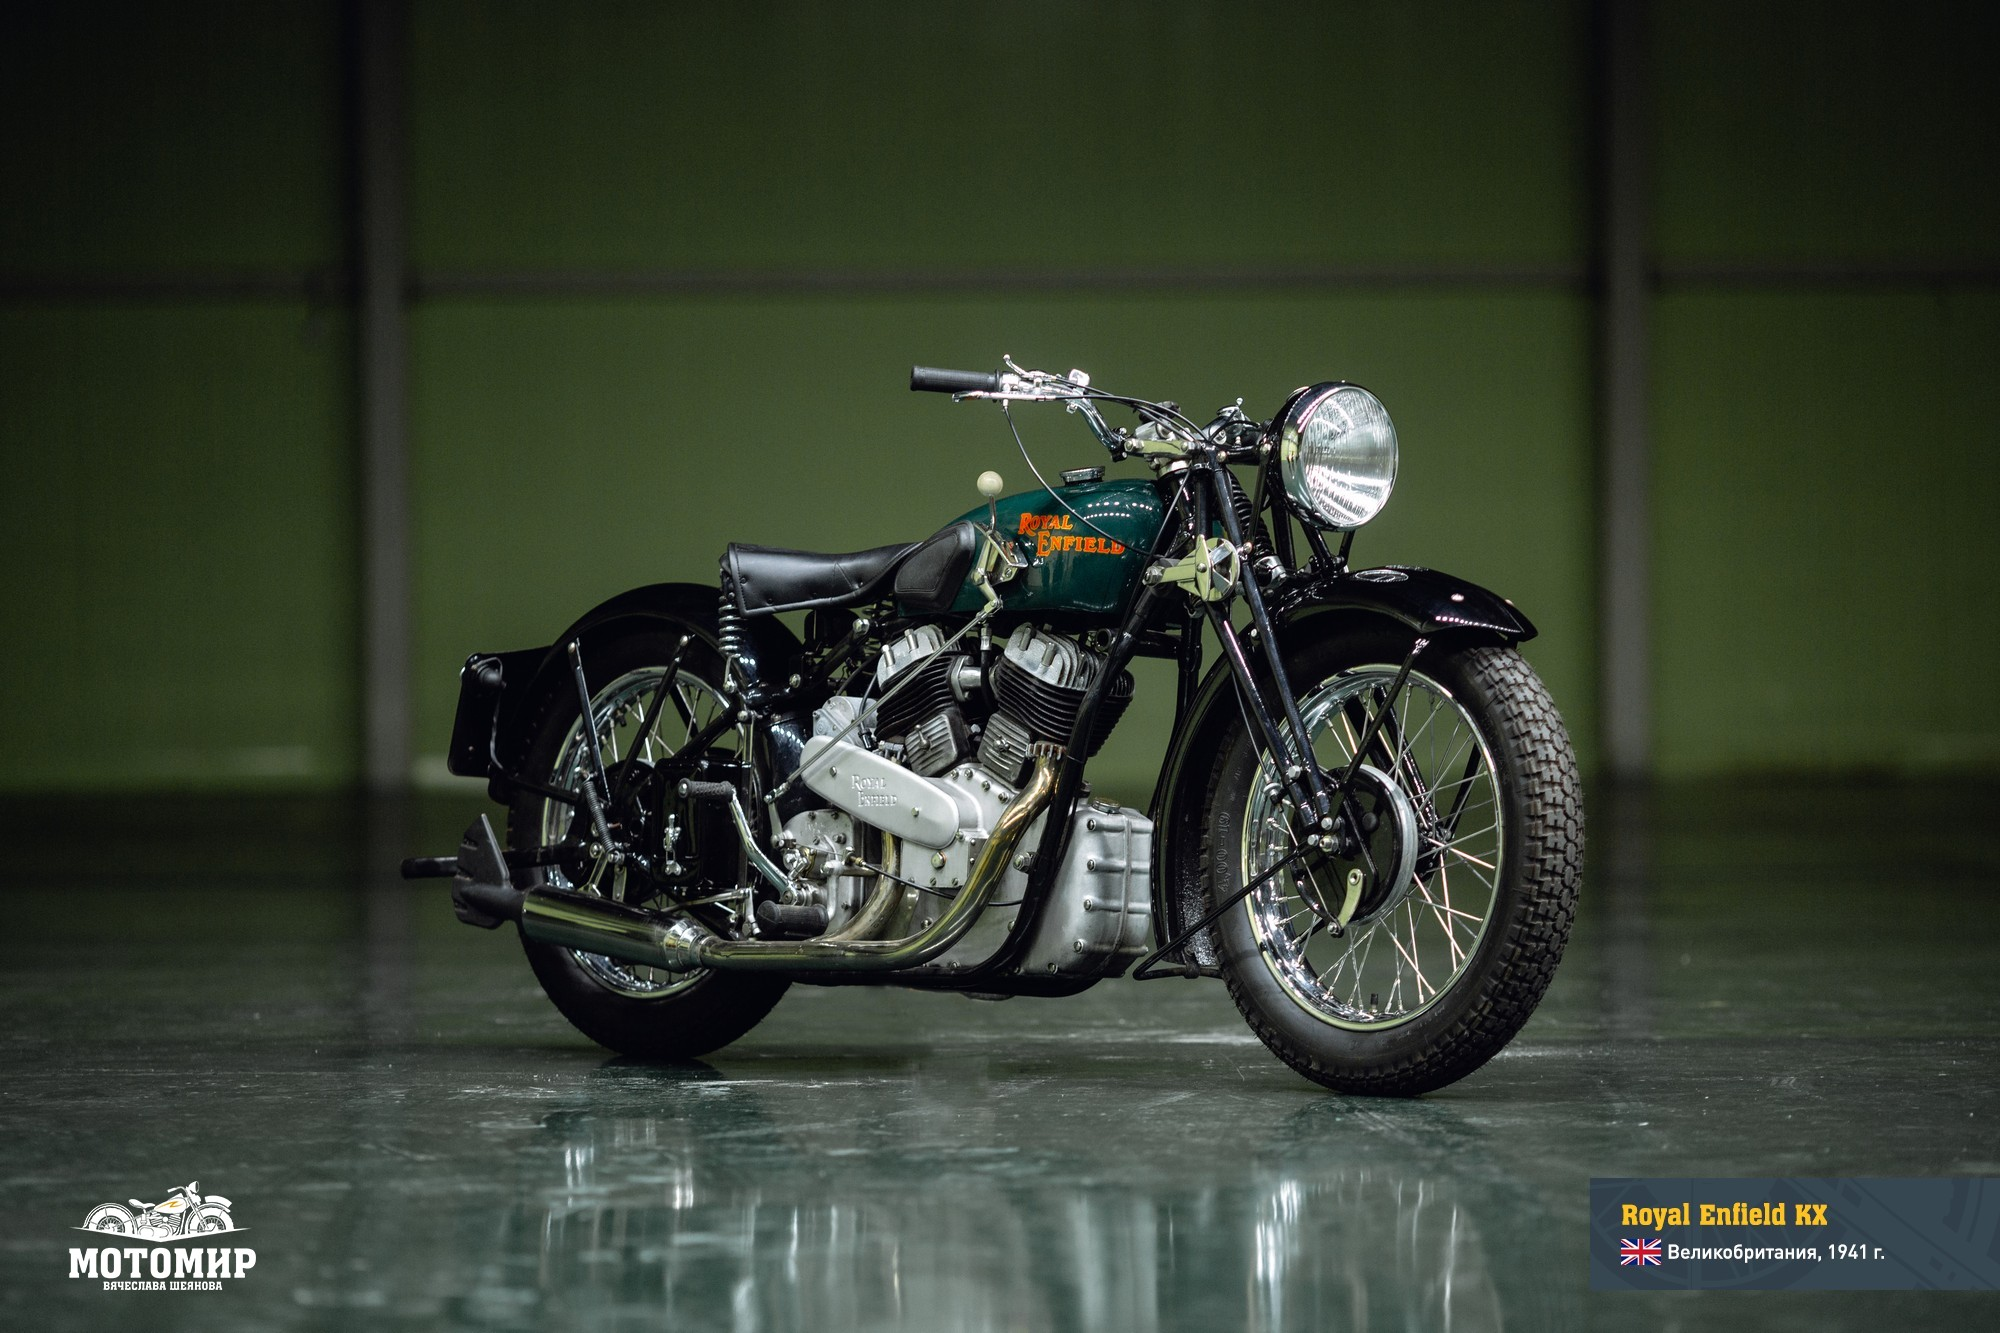 royal-enfield-kx-201601-web-06